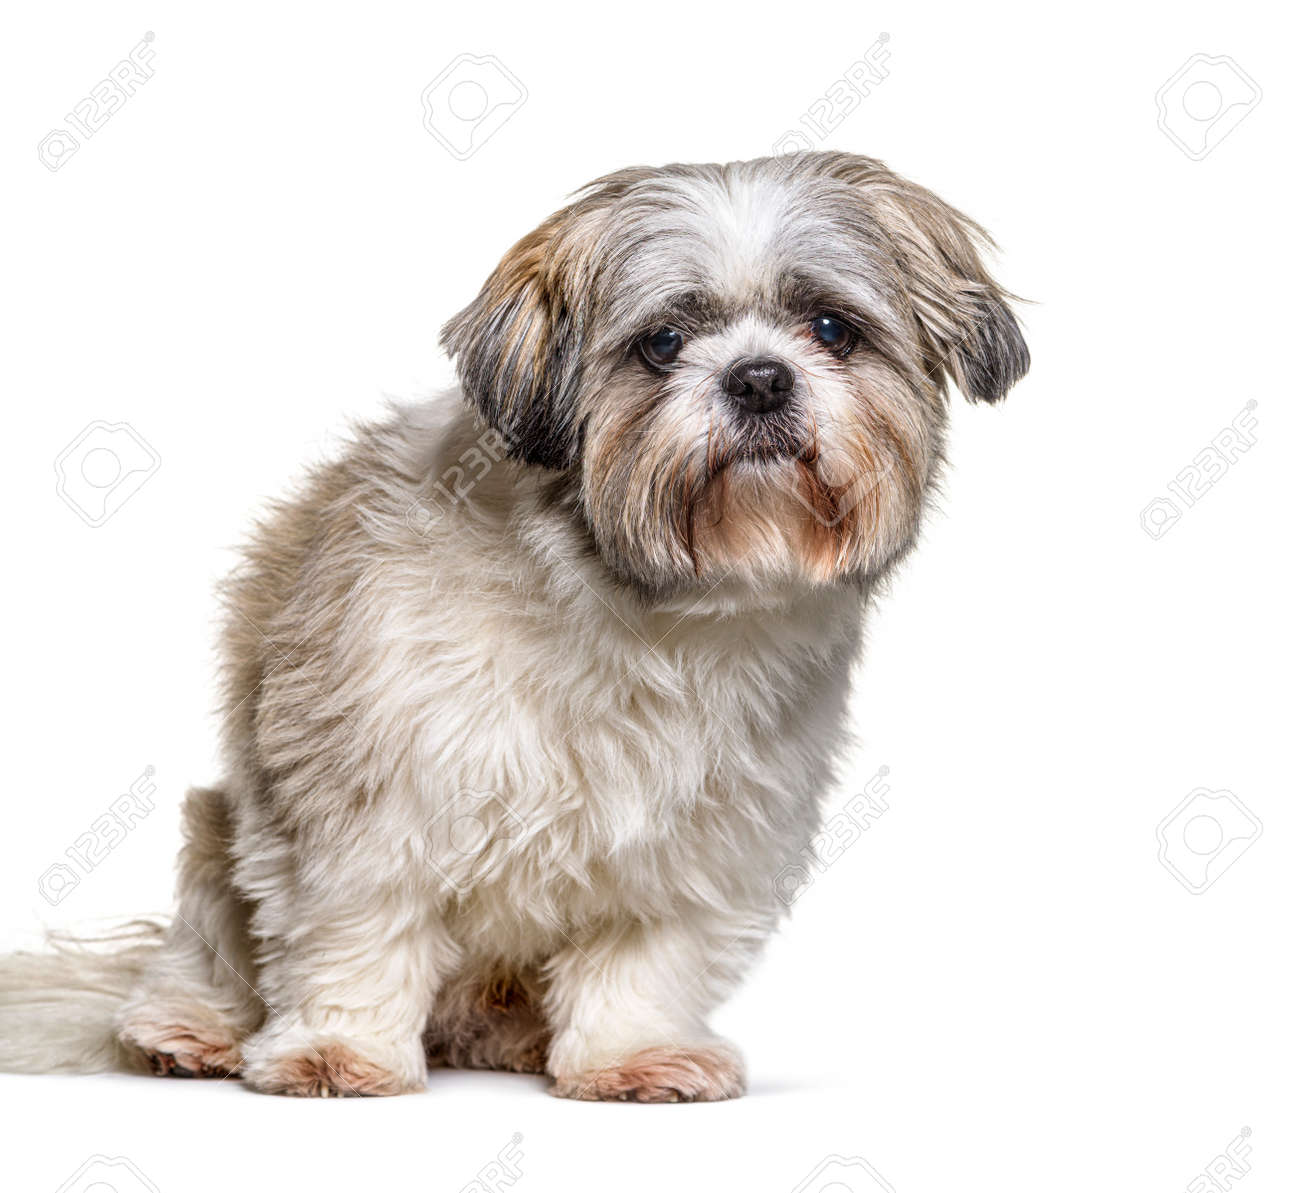 Shih Tzu looking at the camera, sitting on white - 171049281